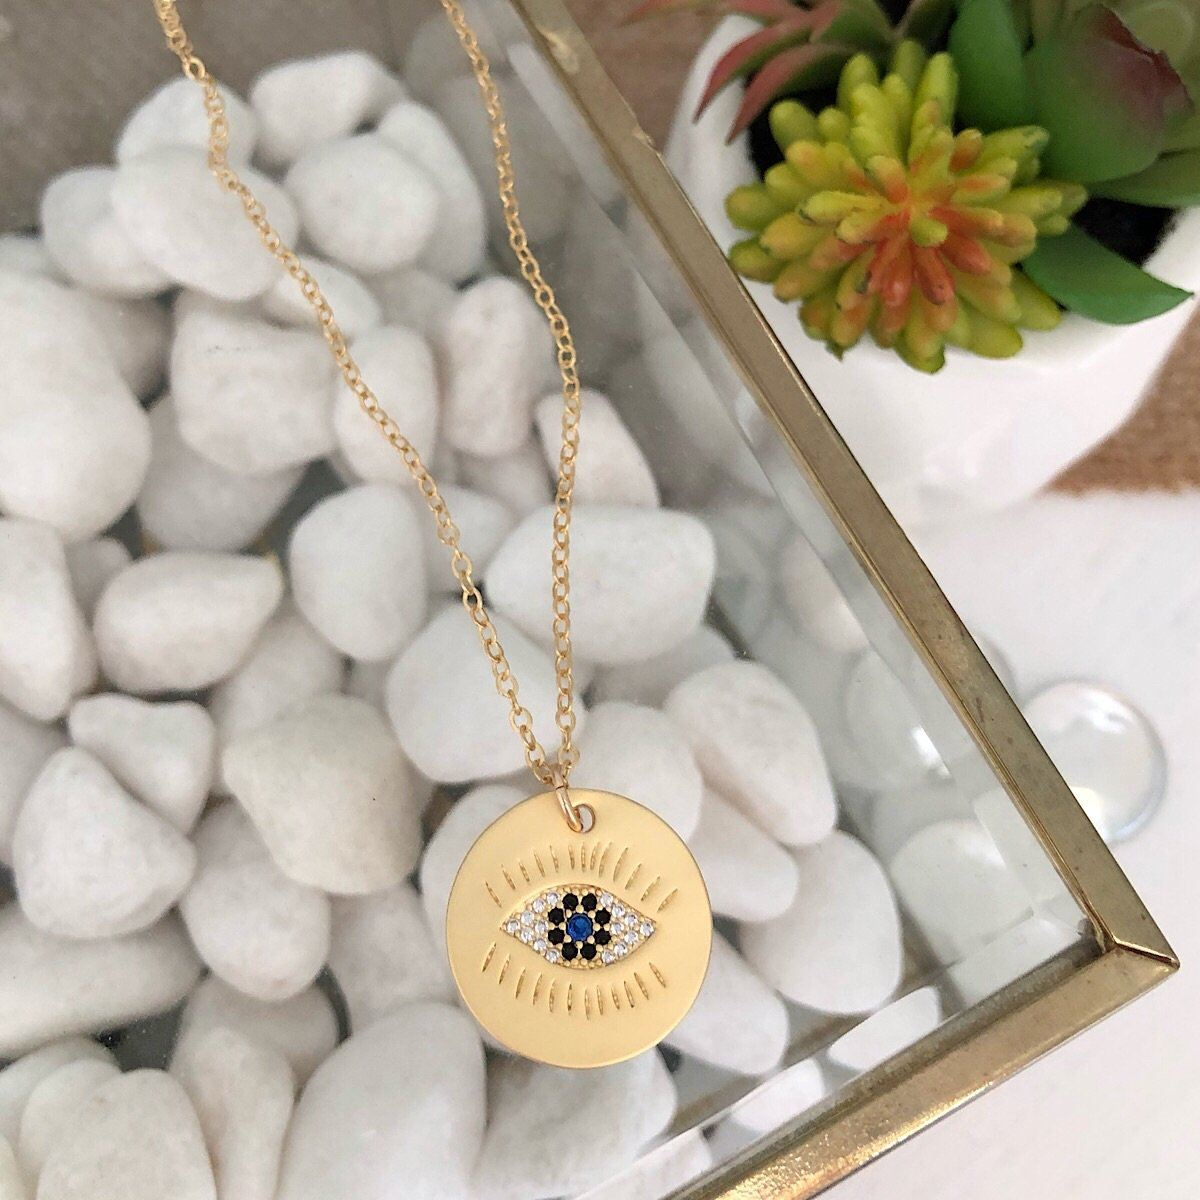 Evil Eye Charm Necklace  - IsabelleGraceJewelry